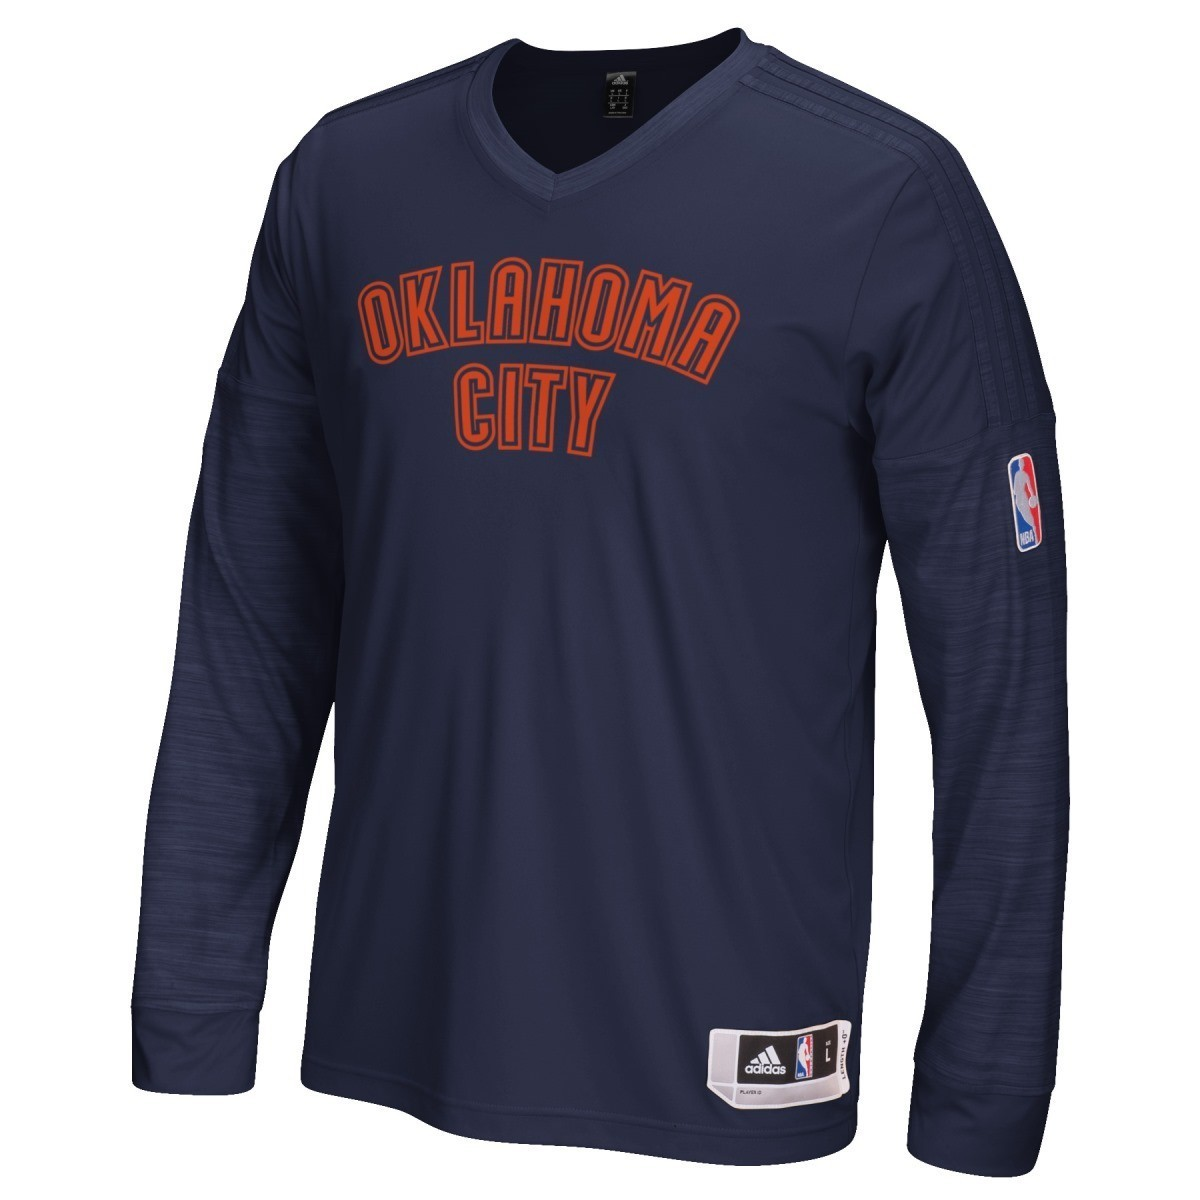 Oklahoma City Thunder Adidas 2015 NBA On-Court Authentic L/S Shooting Shirt